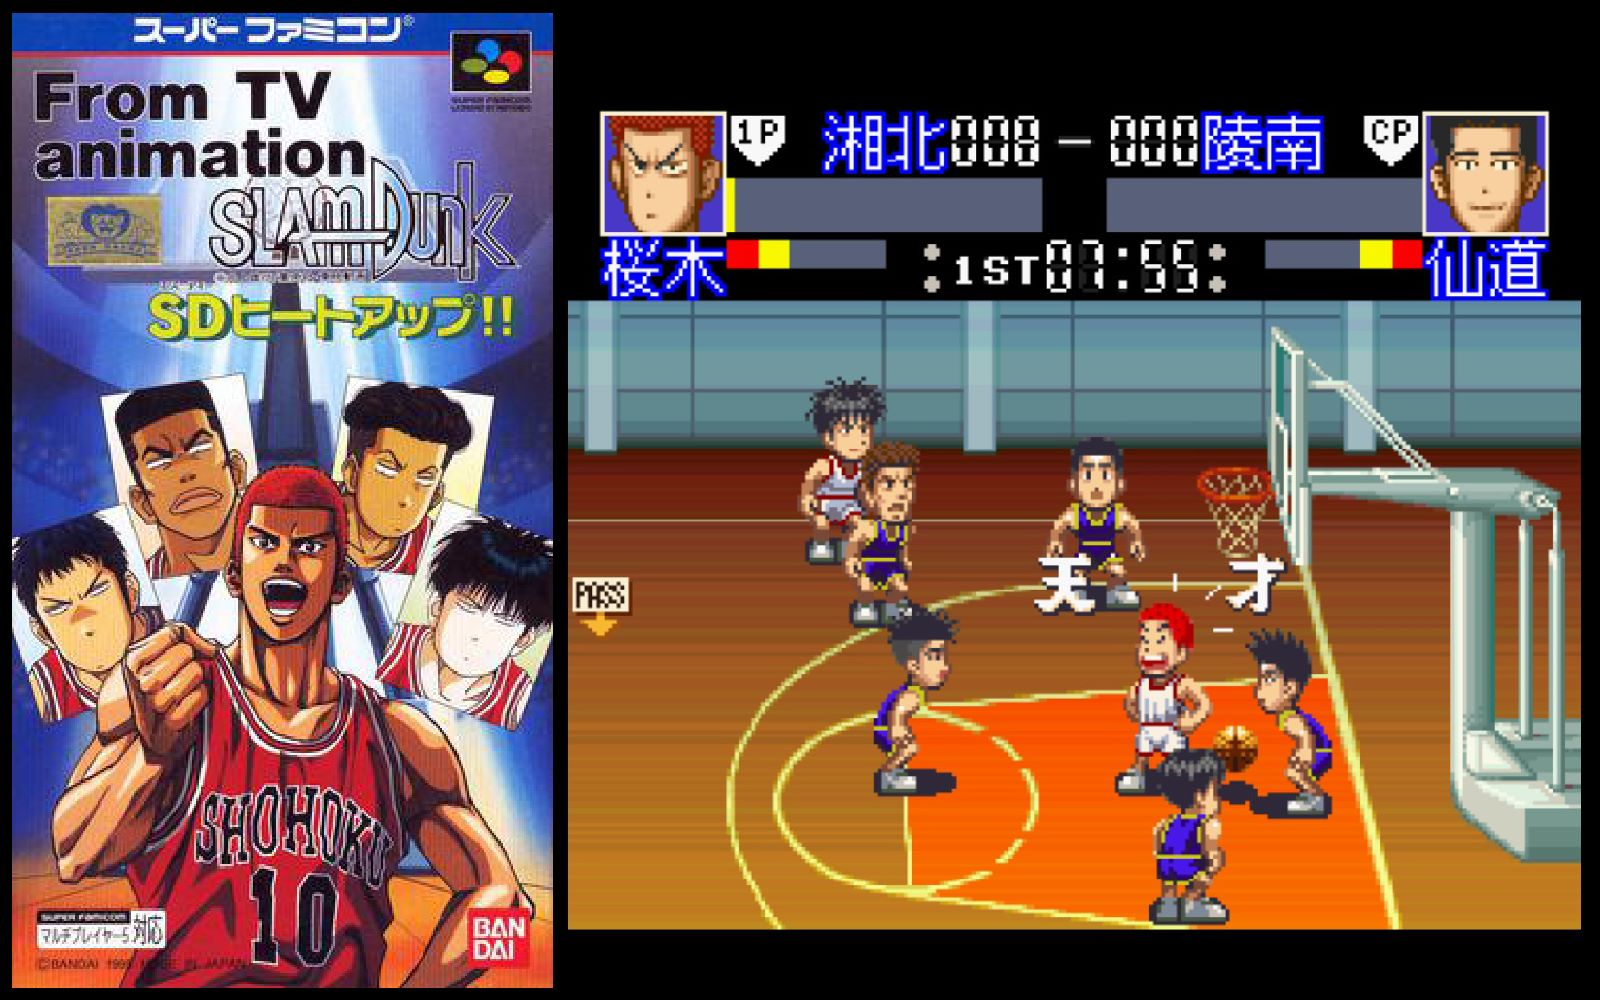 snes/sfc灌籃高手SlamDunk必殺技《From TV animation - Slam Dunk SD Heat Up!!》_嗶哩嗶哩 (゜-゜)つロ 干杯~-bilibili